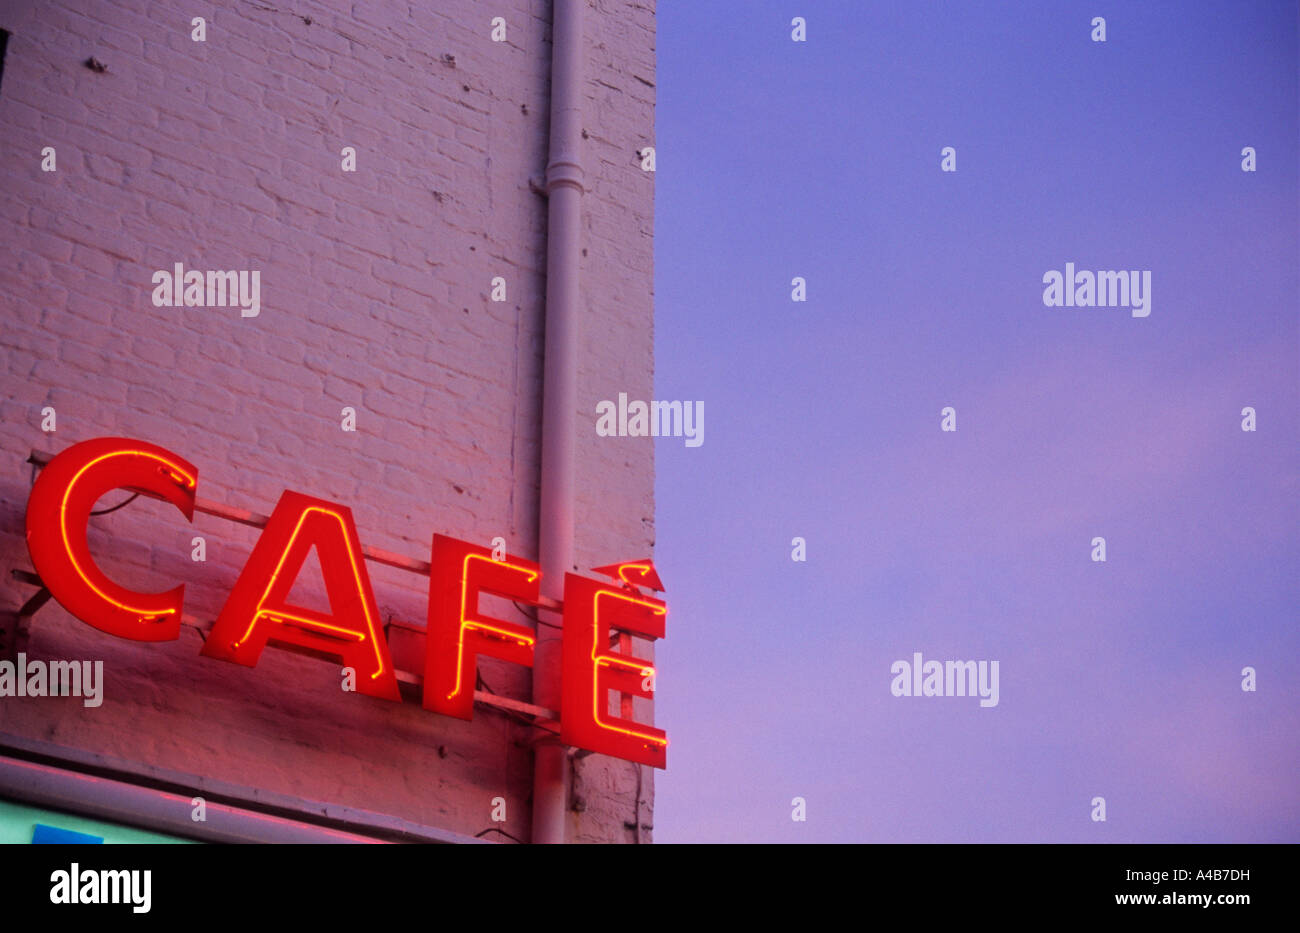 Detail of red neon sign stating CAFE on side of brick wall painted pink and warmly glowing under pink-blue evening - Stock Image